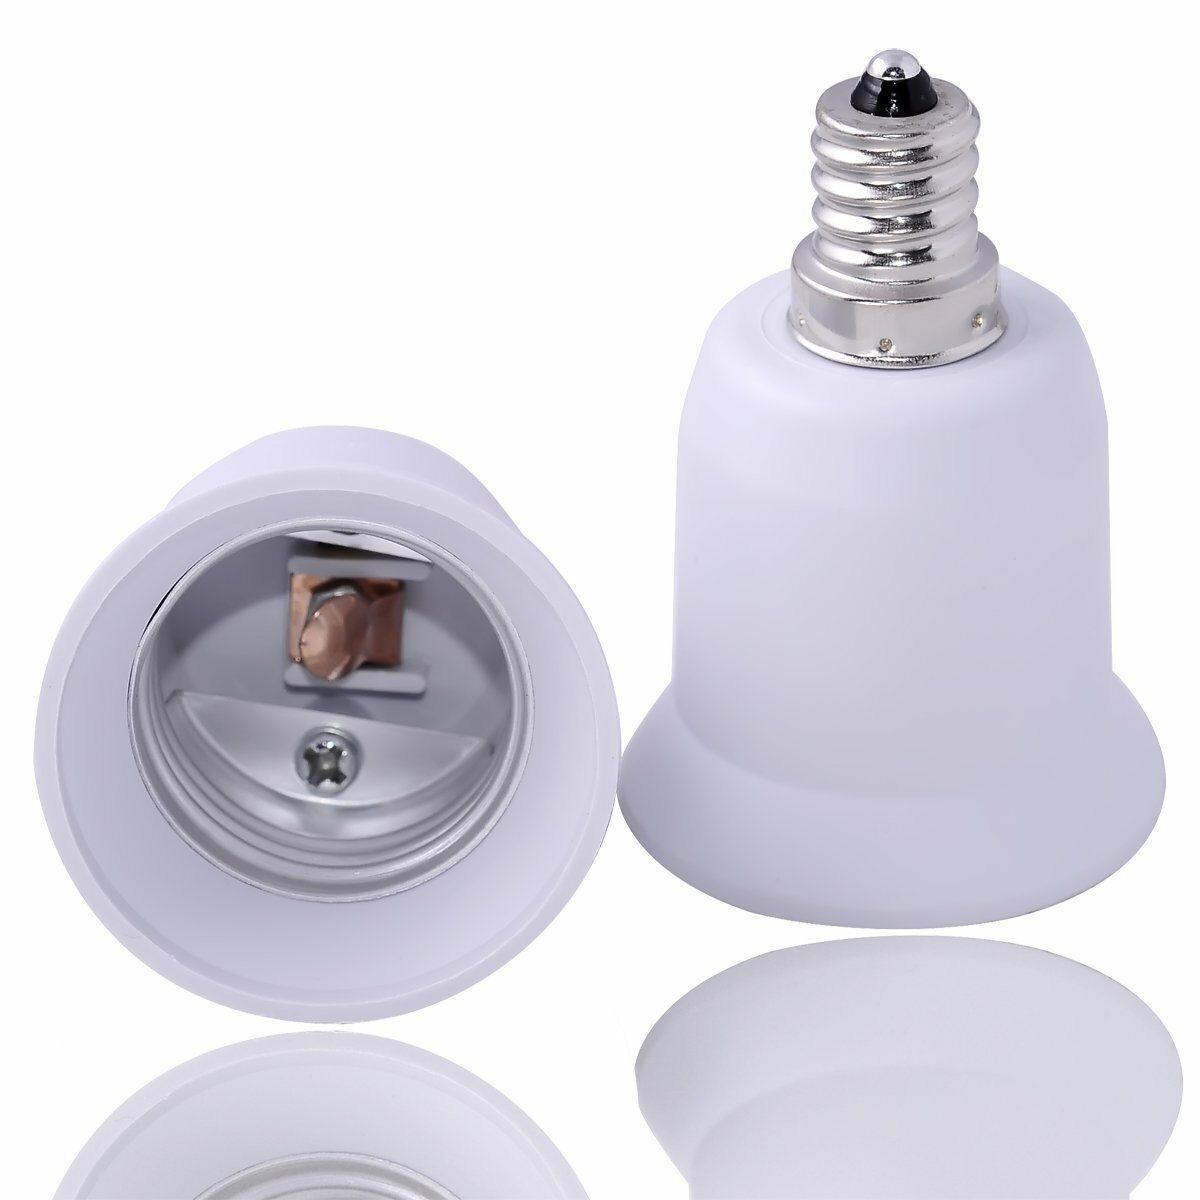 E12 to e27 e26 candelabra light lamp bulb socket base enlarger adapter converter ebay Light bulb socket